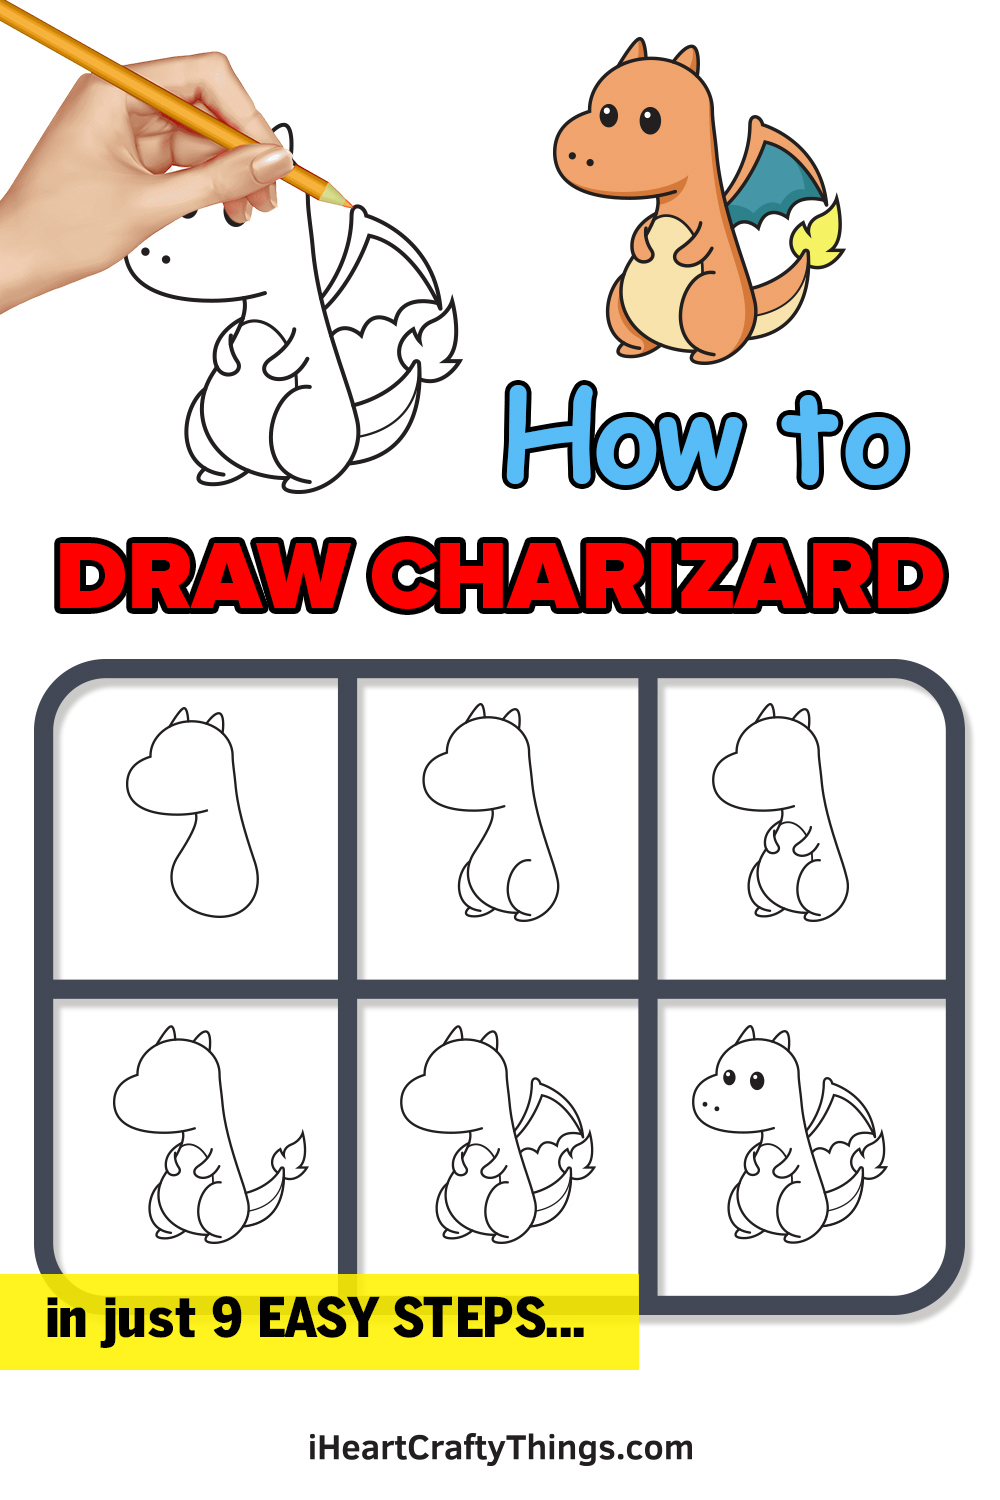 how to draw charizard in 9 easy steps